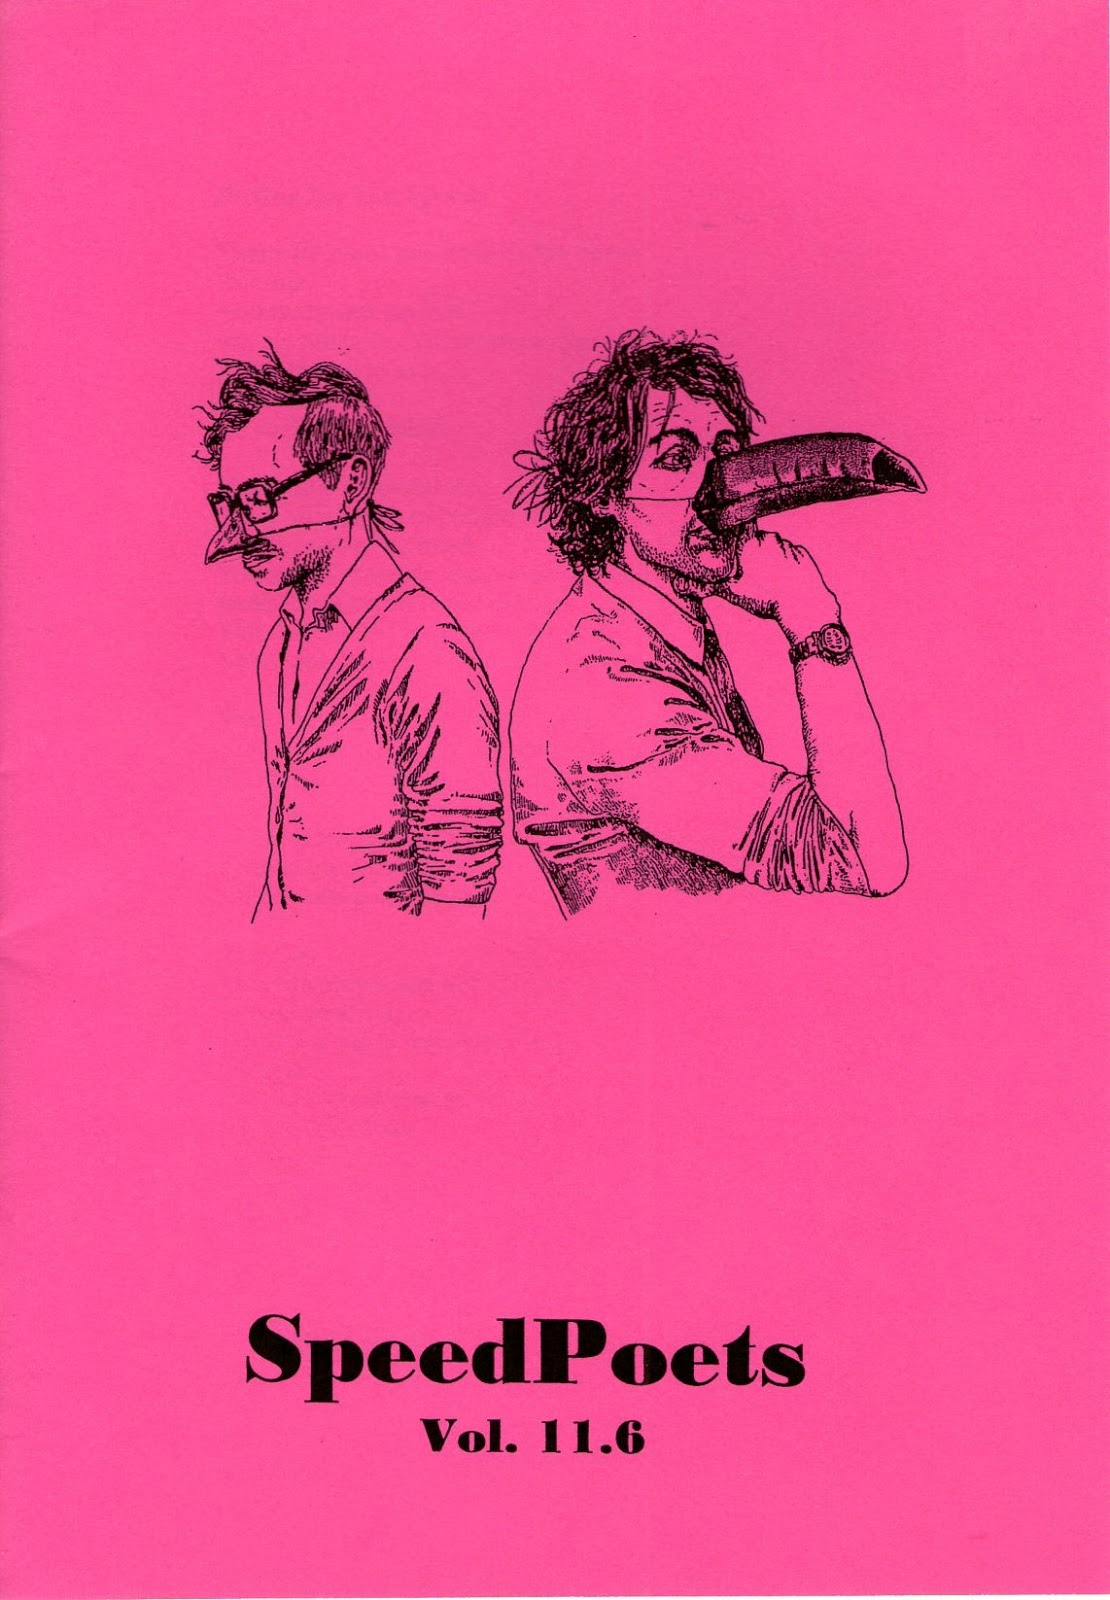 SpeedPoets zine cover